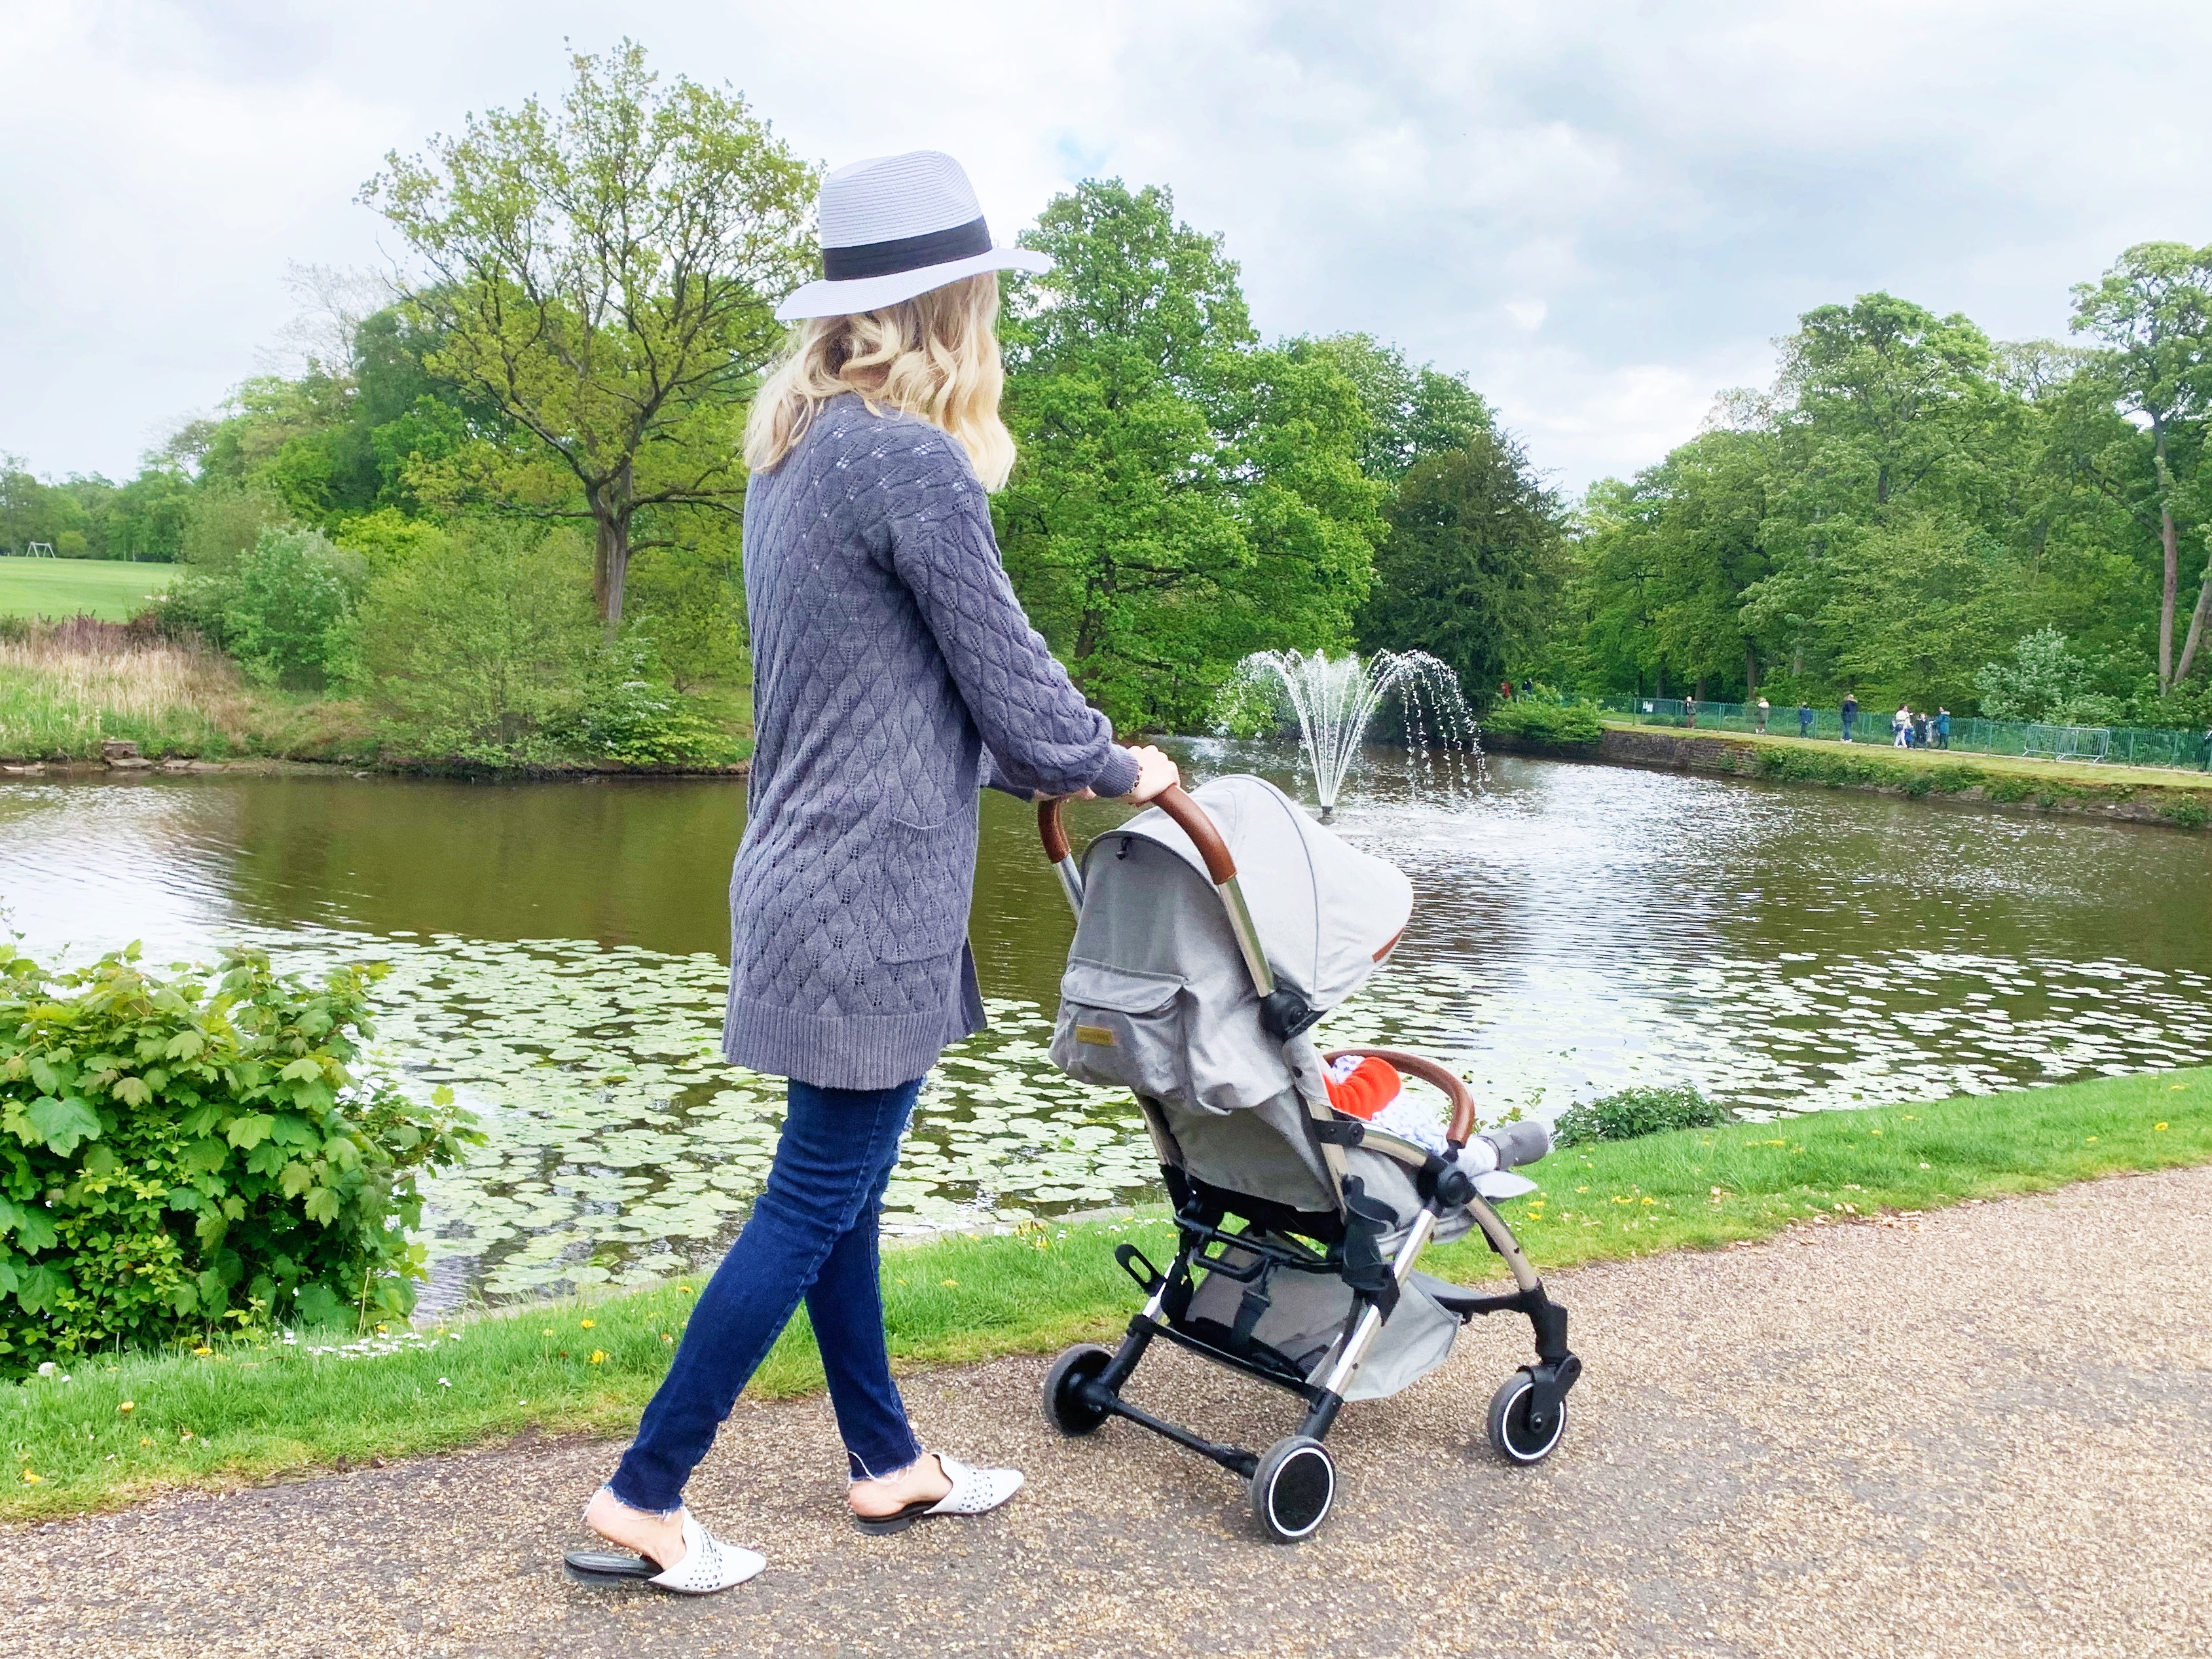 A woman is walking away from the camera pushing a stroller. She is wearing a grey cardigan and jeans and a white hat. She is walking next to a lake with a fountain in a park.